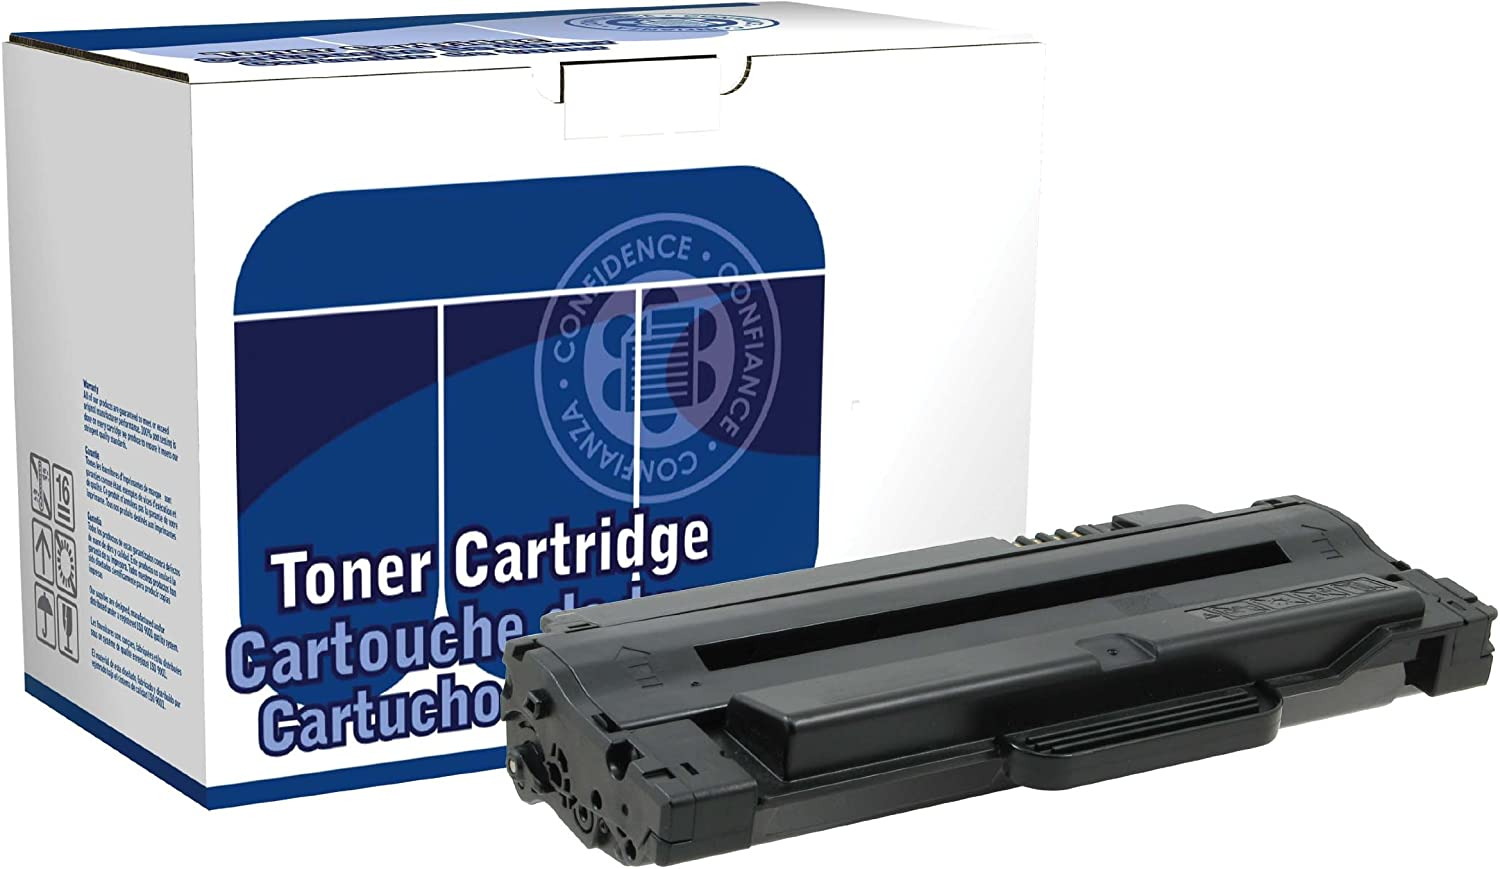 Dataproducts DPCD1130 High Yield Remanufactured Toner Cartridge Replacement for Dell 1130/1133/1135N